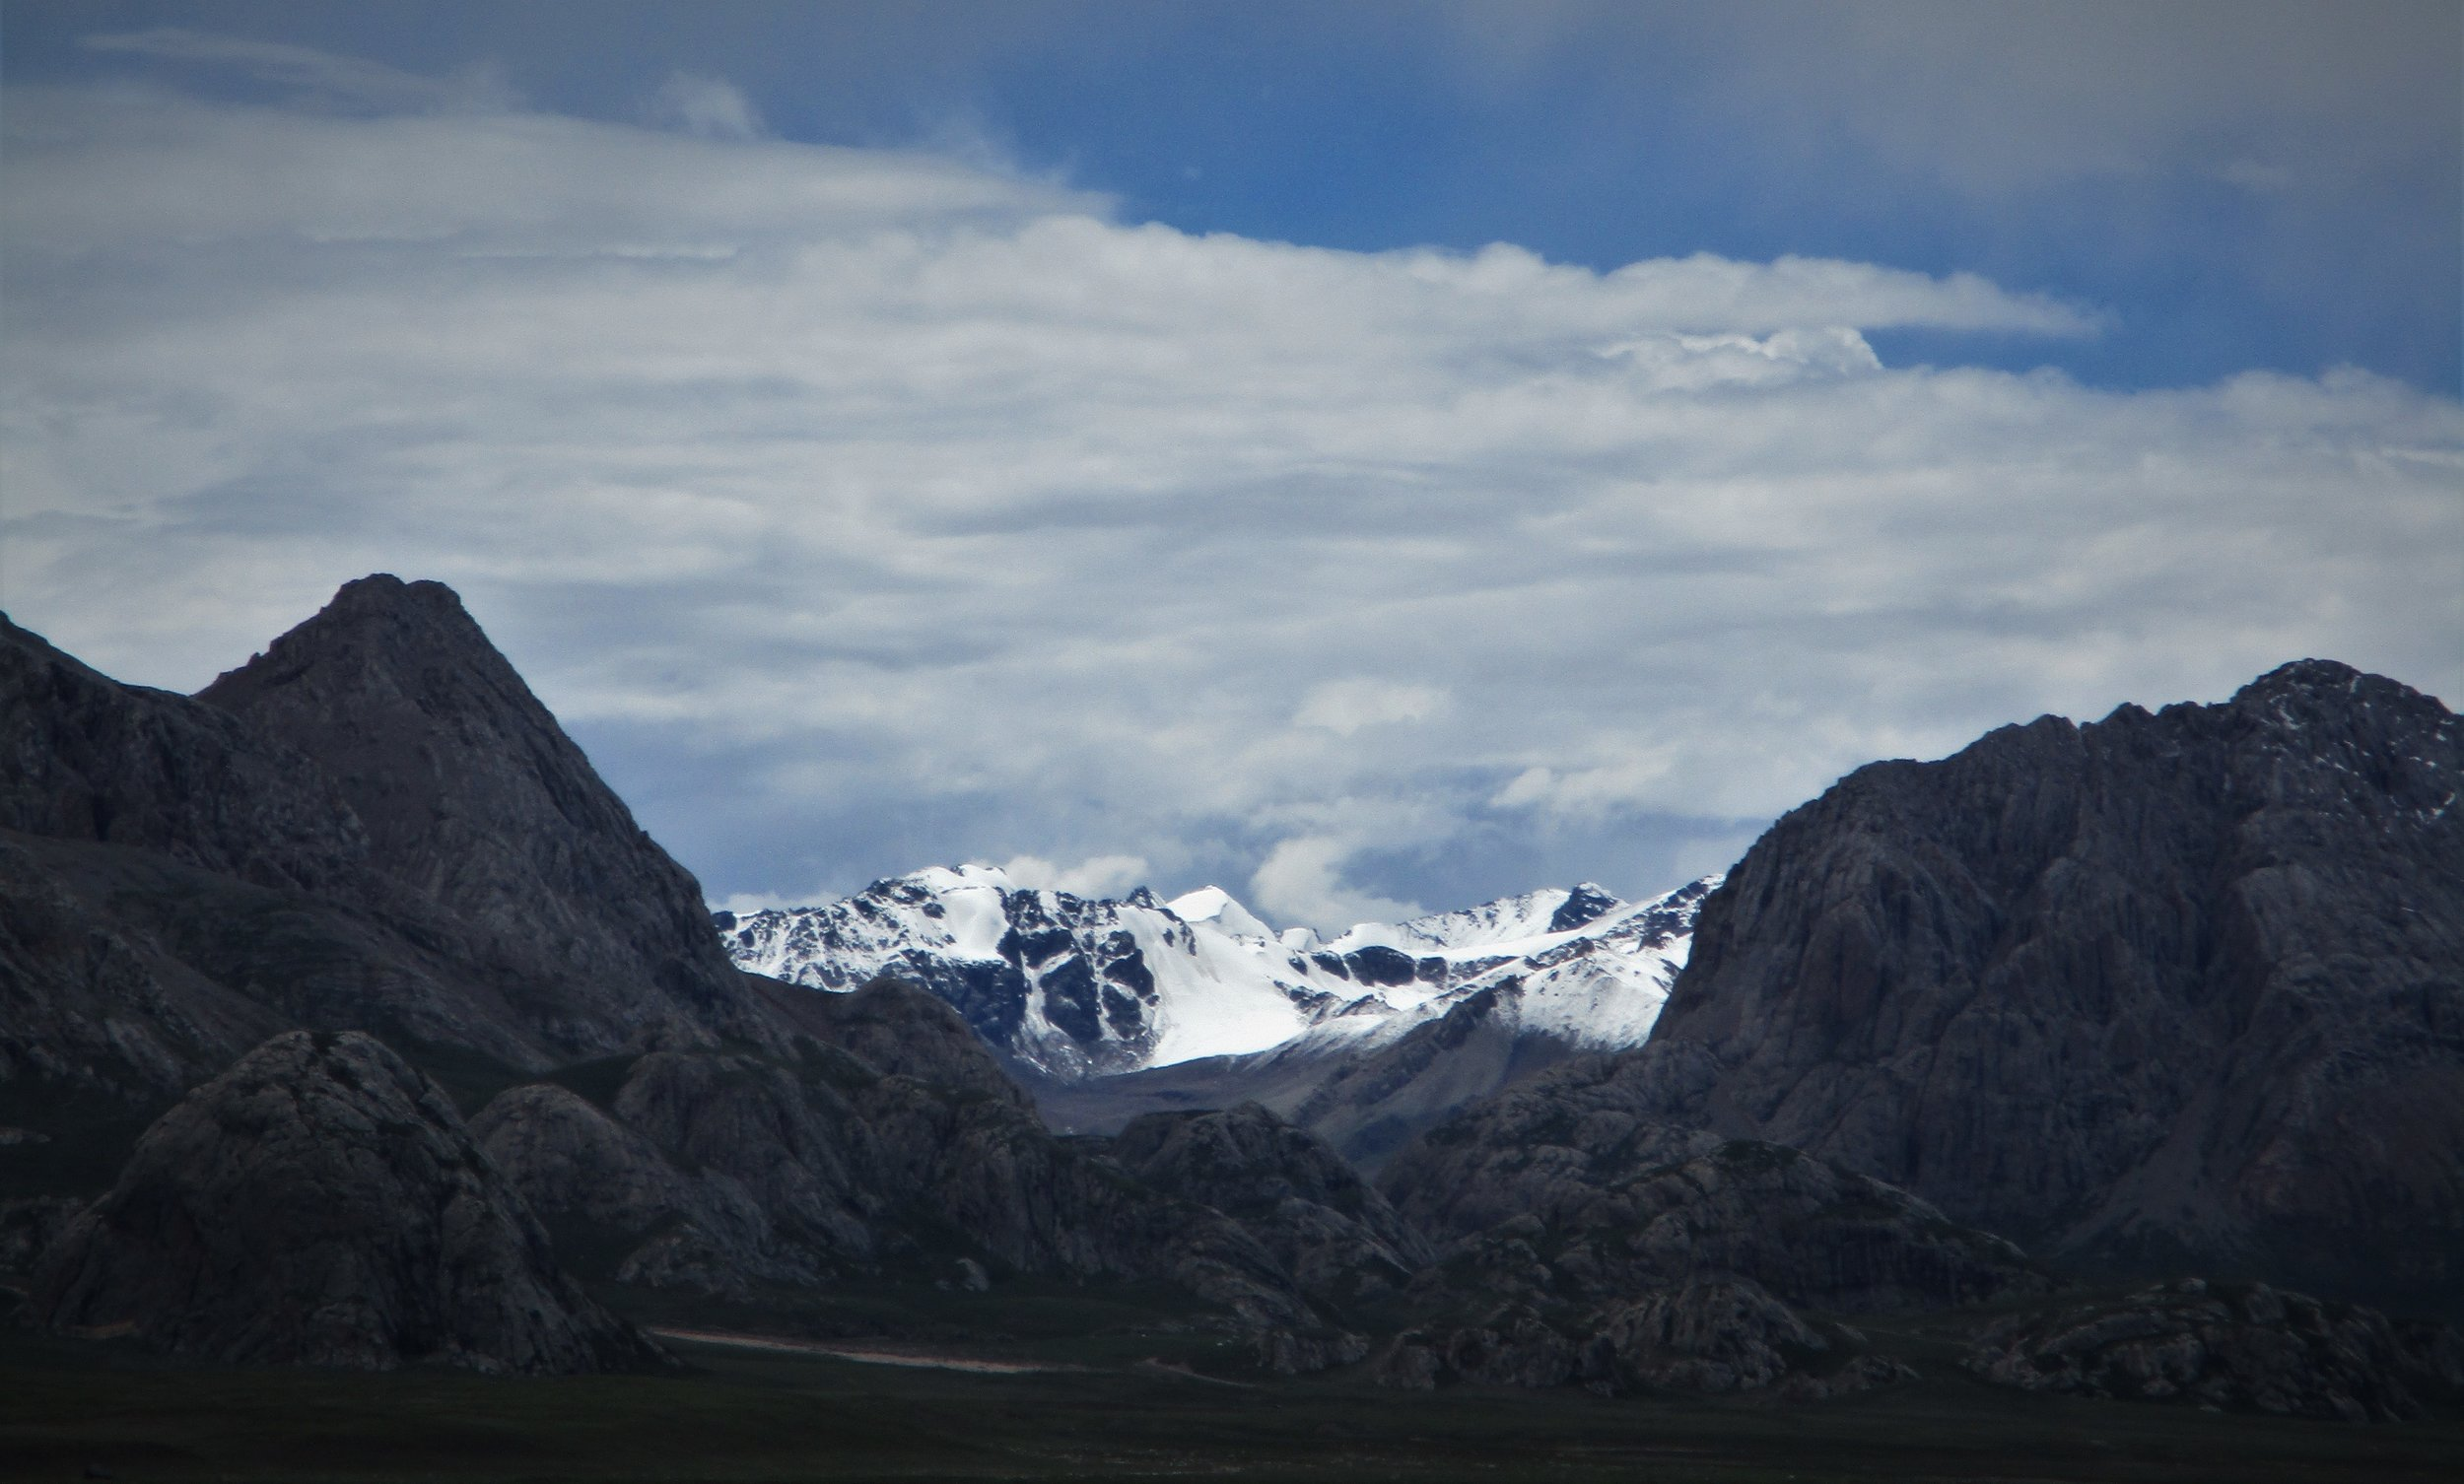 A close up of the Southern end of the Glacial peaks. The white pyramid dead center is probably piont 5797m rank 5.